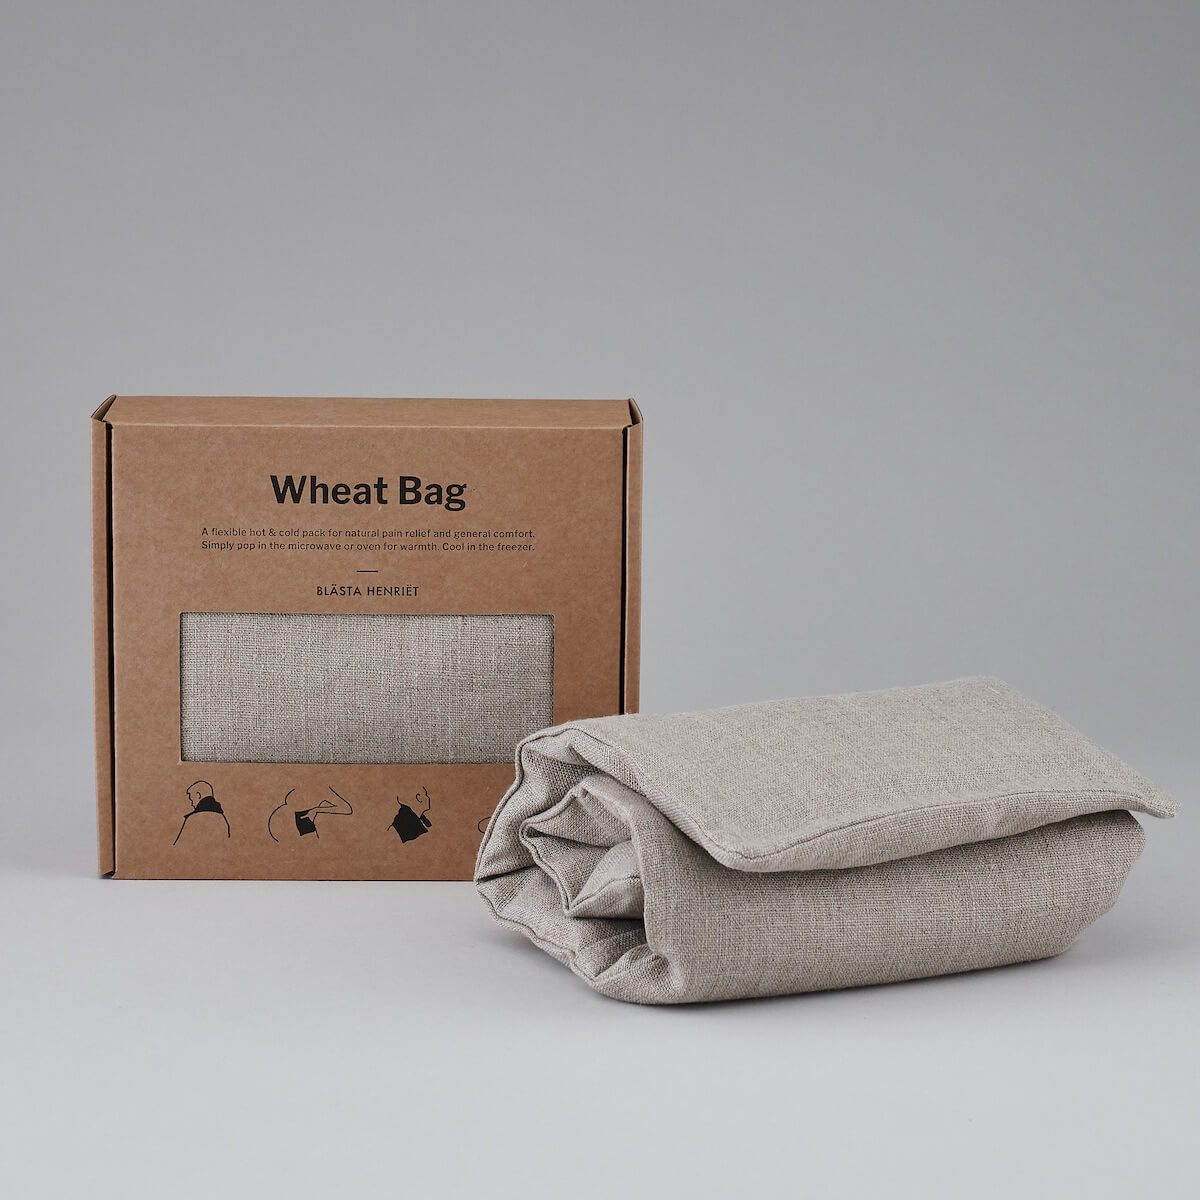 unscented wheat bag plain linen - Blasta Henriet